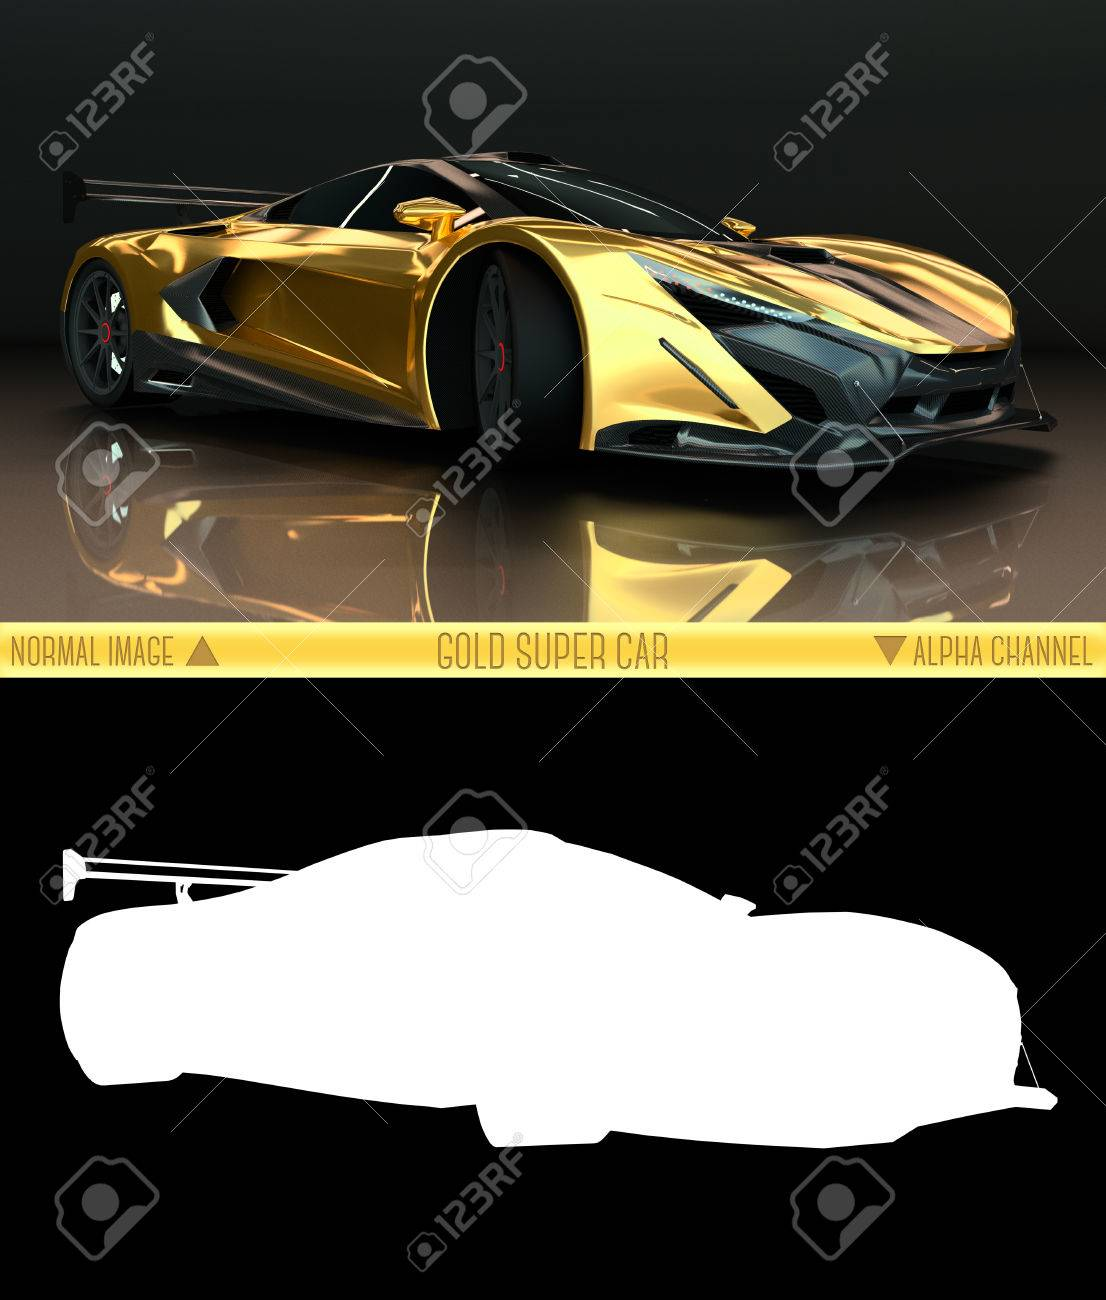 Sports Car Front View The Image Of A Sports Gold Car On A Black Stock Photo Picture And Royalty Free Image Image 49392971